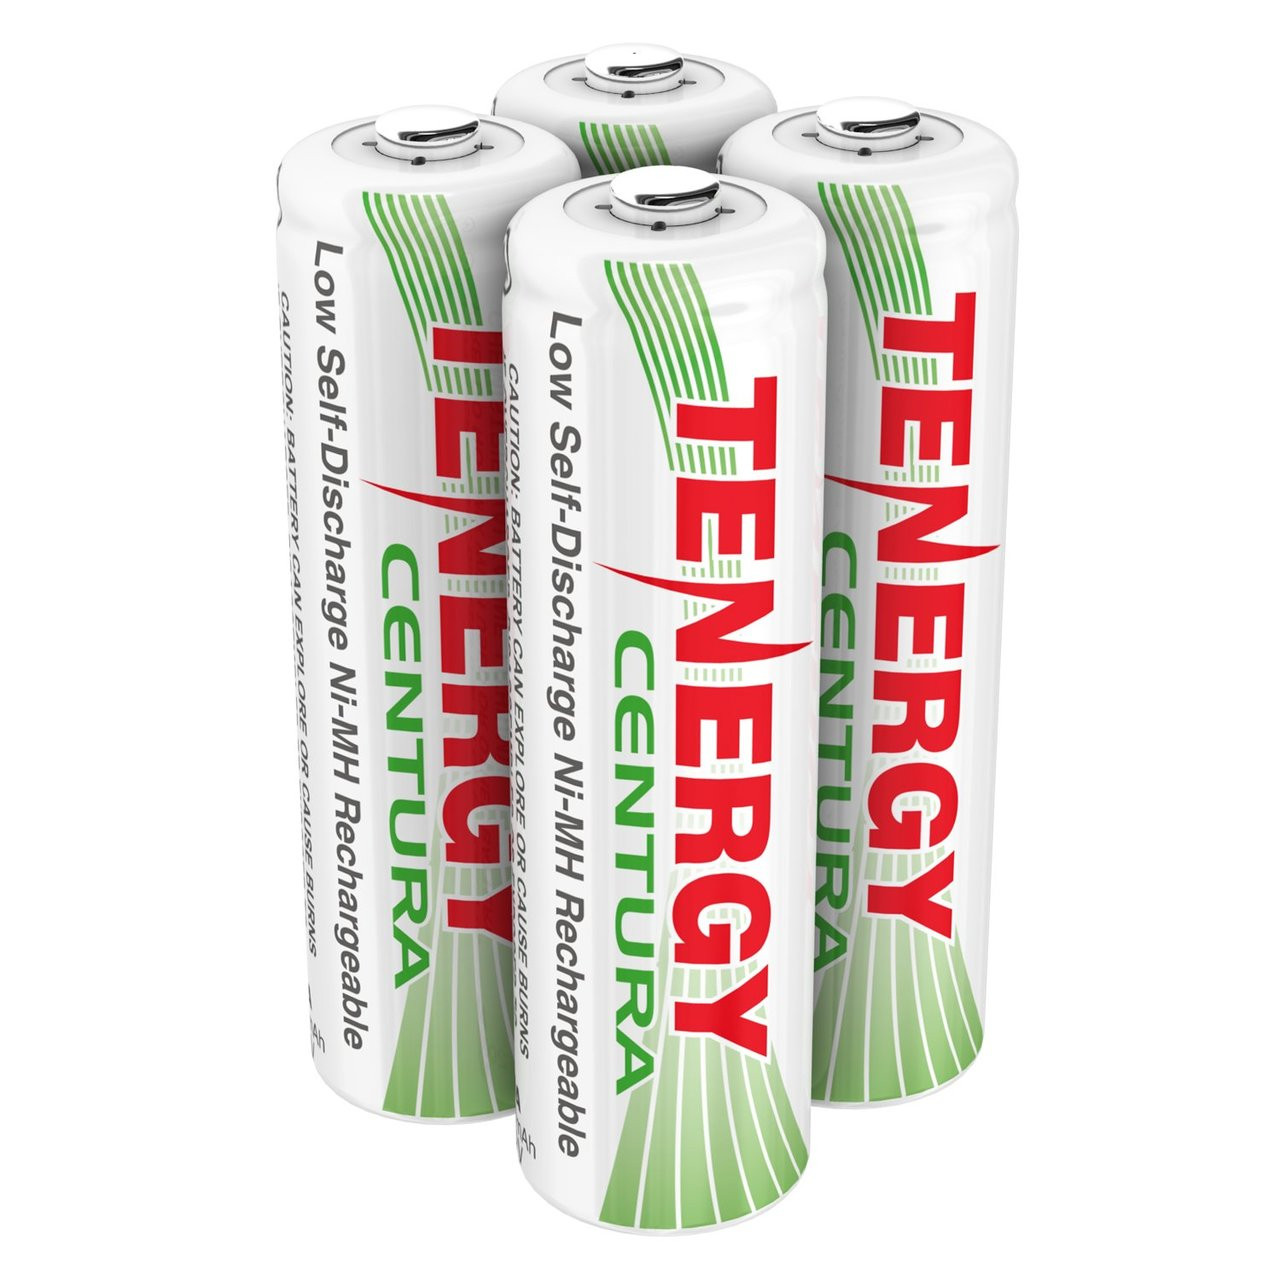 Tenergy Centura NiMH AA 1.2V 2000mAh Rechargeable Batteries, 4-pack (1 x card)